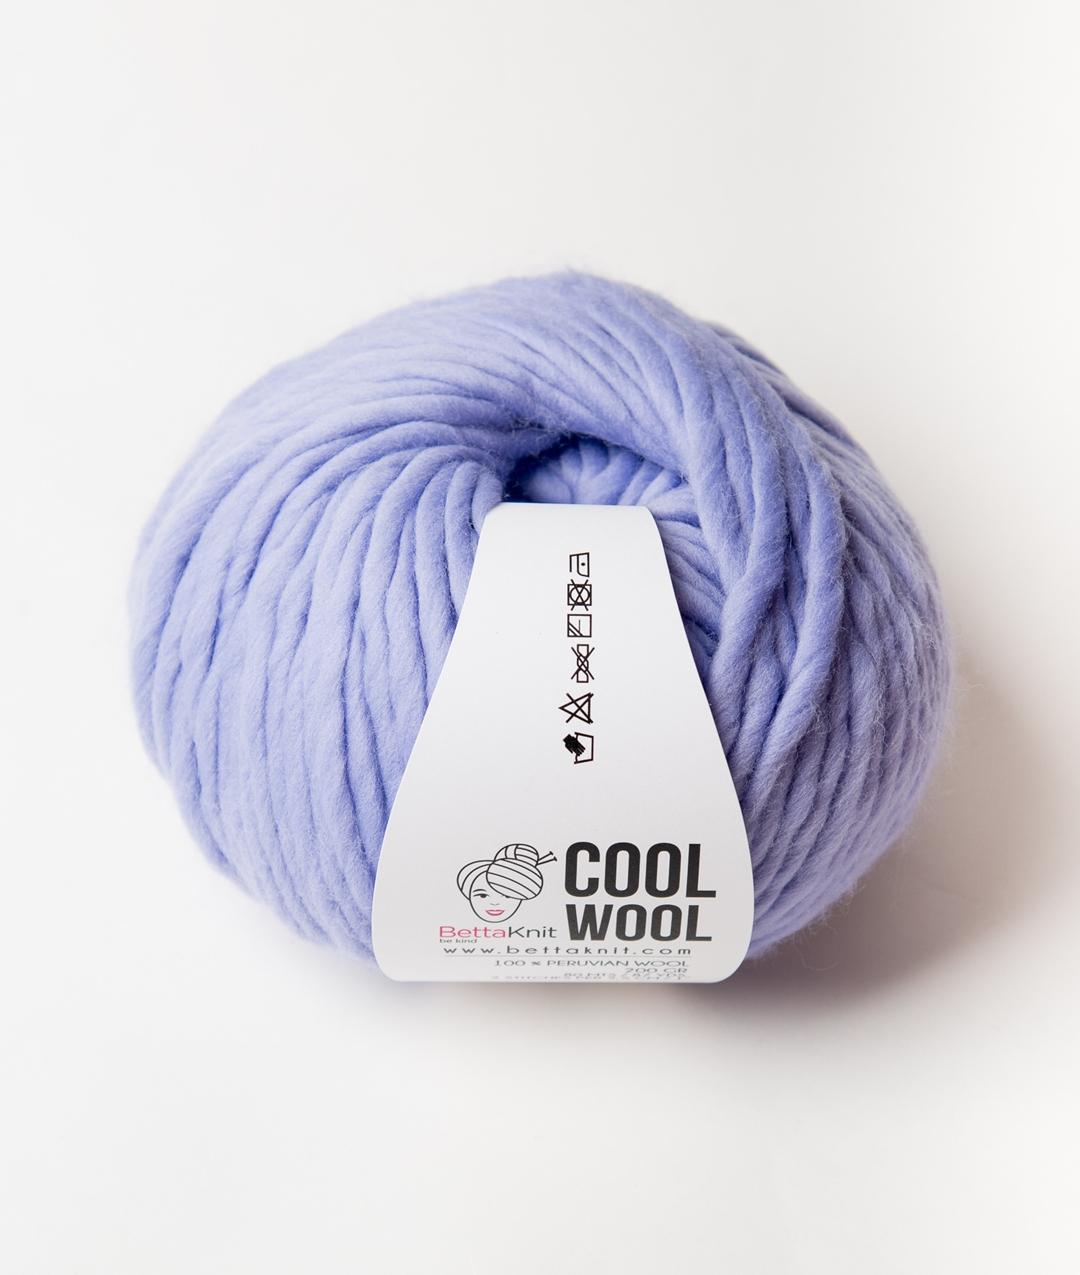 Wool - Yarns - Cool Wool - 1